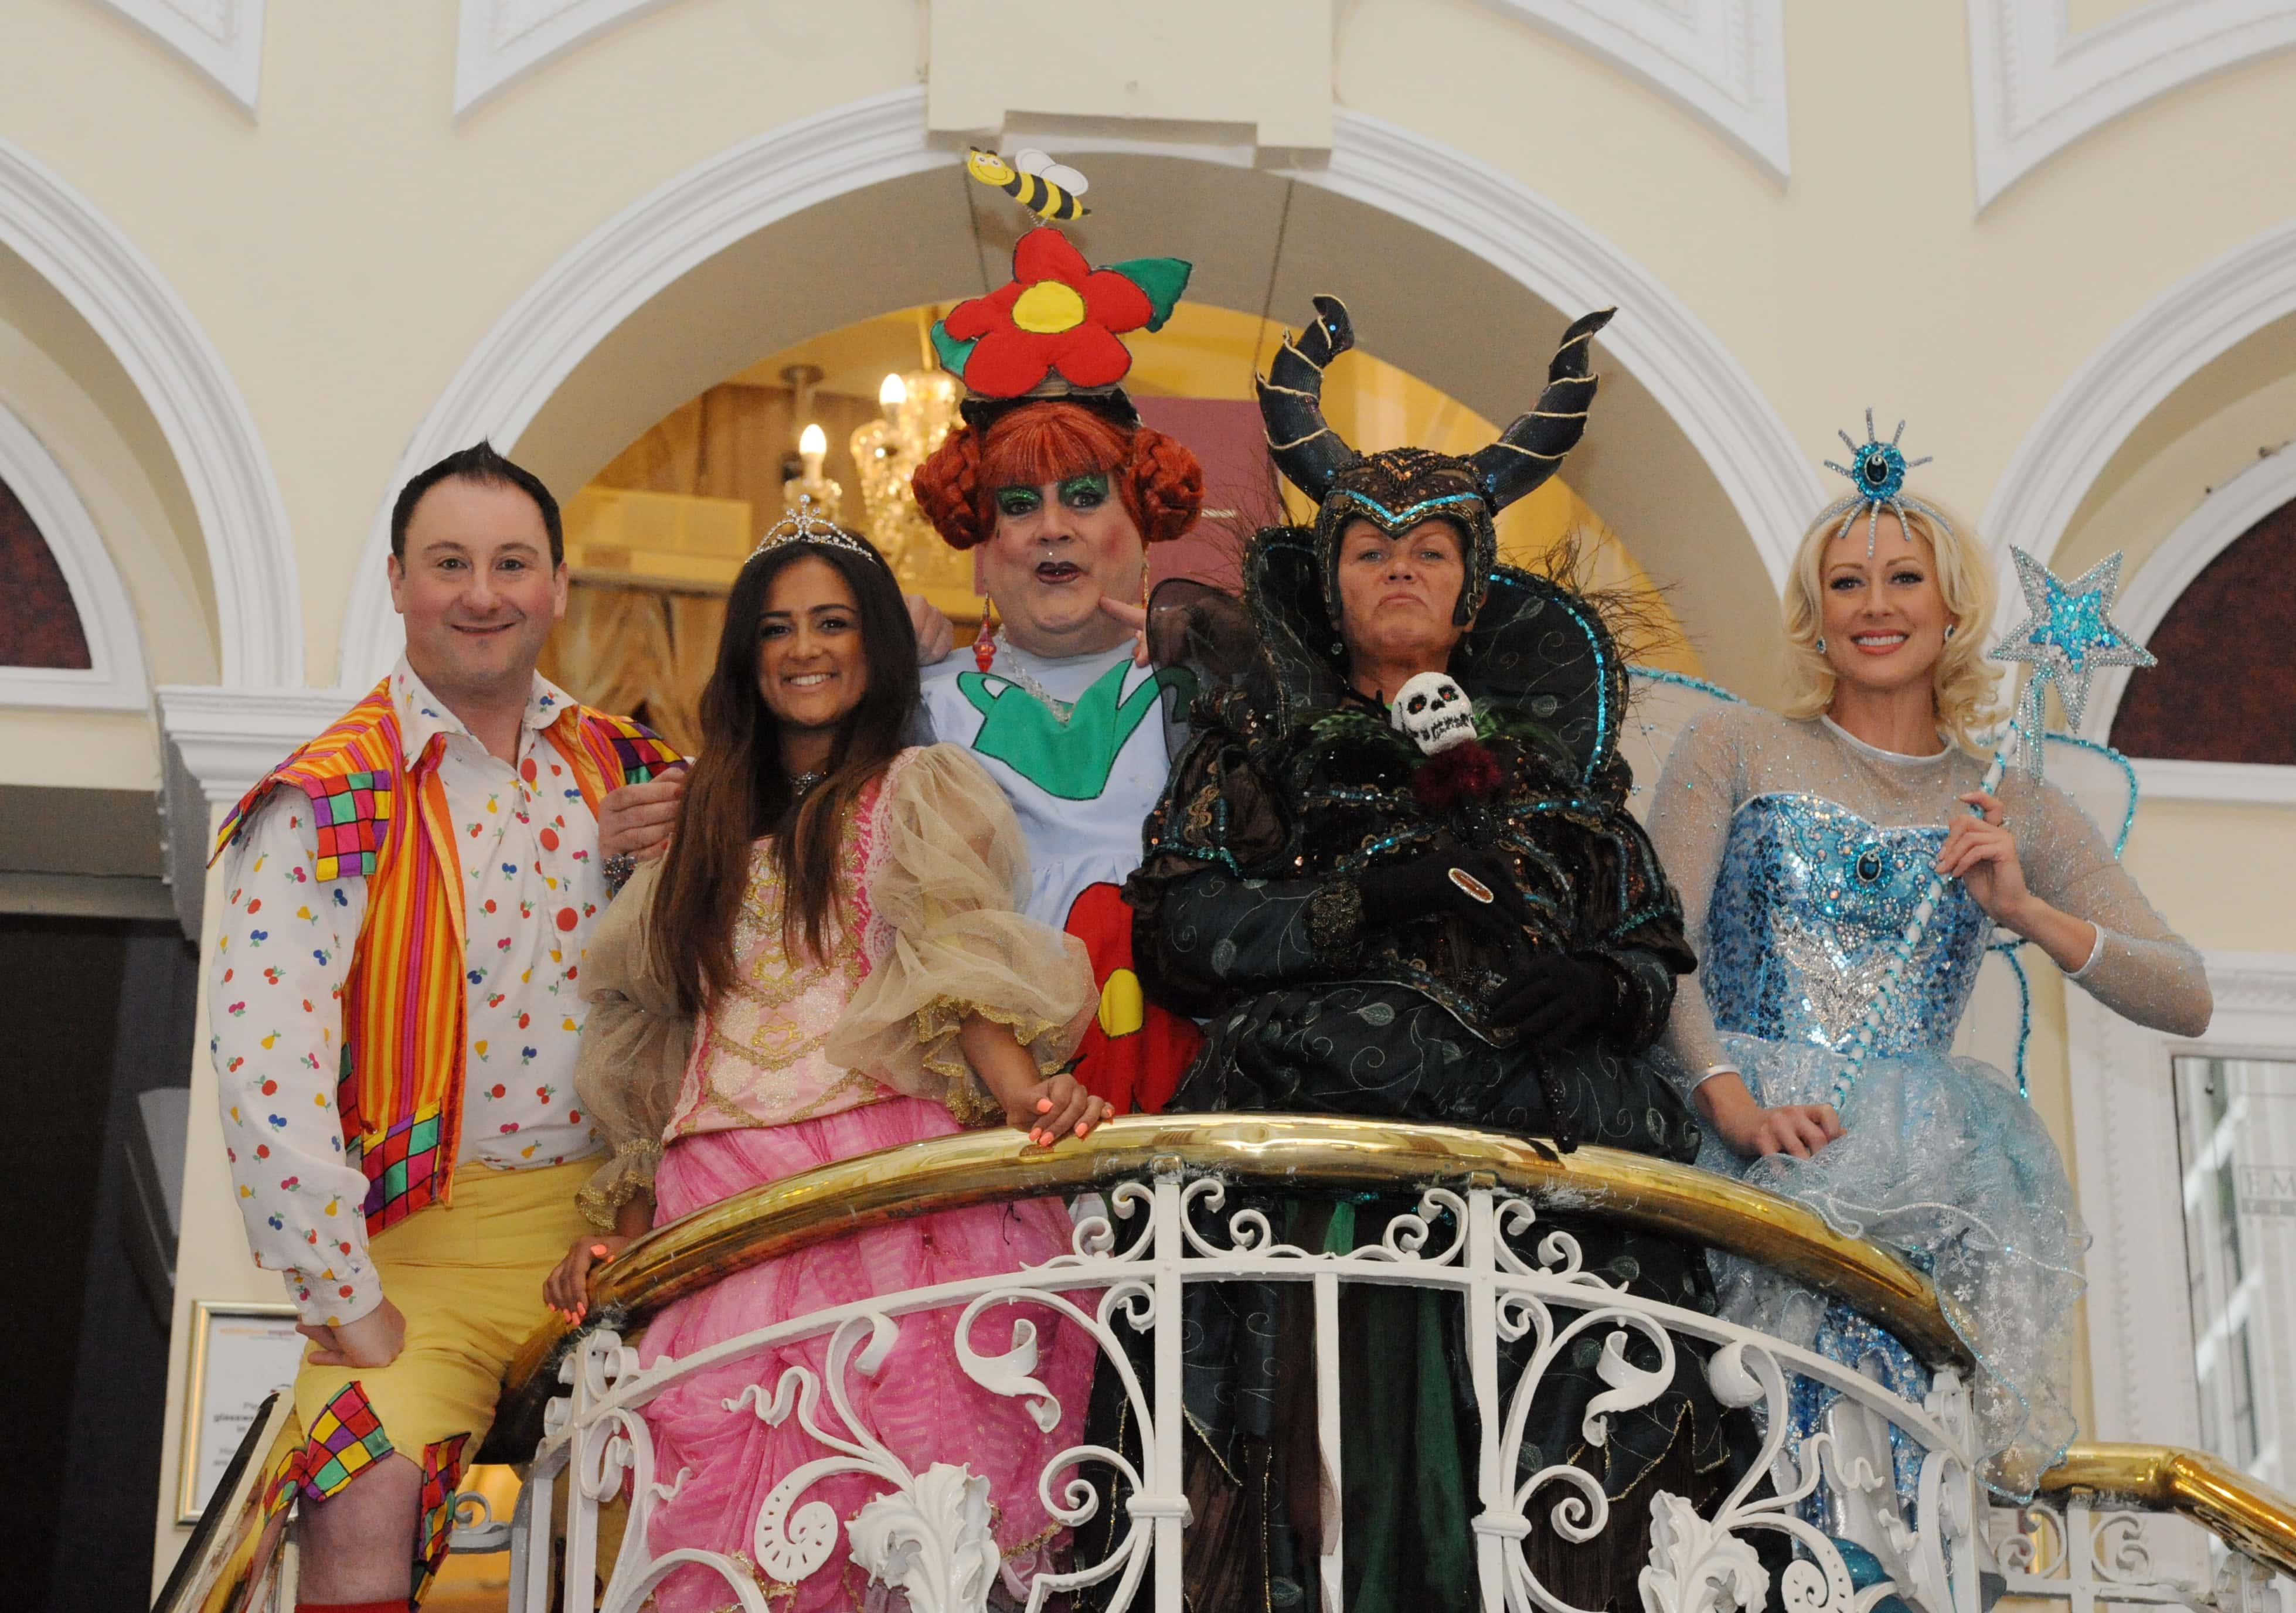 Dated: 10/10/2016 The cast from the classic tale of Sleeping Beauty who will perform at Sunderland Empire from 9 - 31 December 2016. Left to right, Andrew Agnew (Silly Billy), Amy-Leigh Hickman (Briar Rose), Bobby Crush (Nurse Nelly), Vicky Entwistle (Carabosse) and Faye Tozer (The Good Fairy).